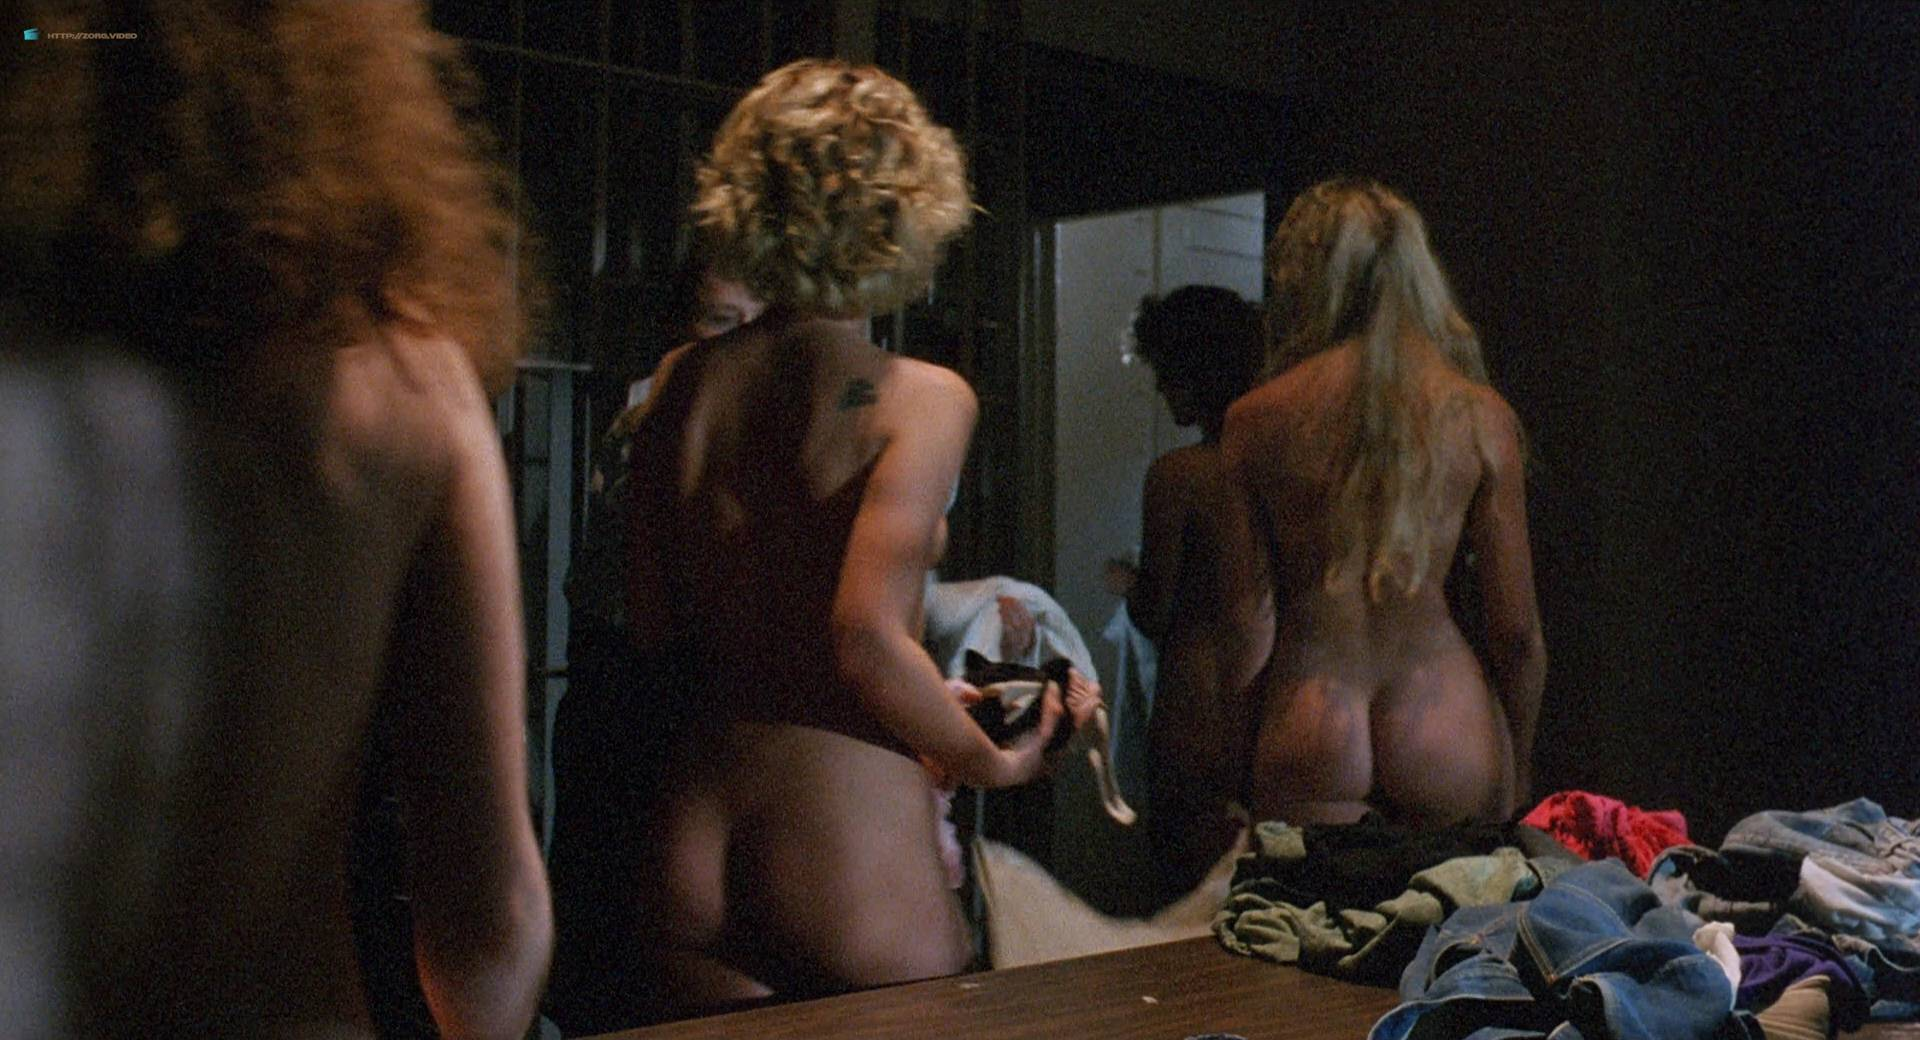 Roxanna Michaels nude Tiffany Million and others nude bush butt - Caged Fury (1989) HD 1080p BluRay (7)